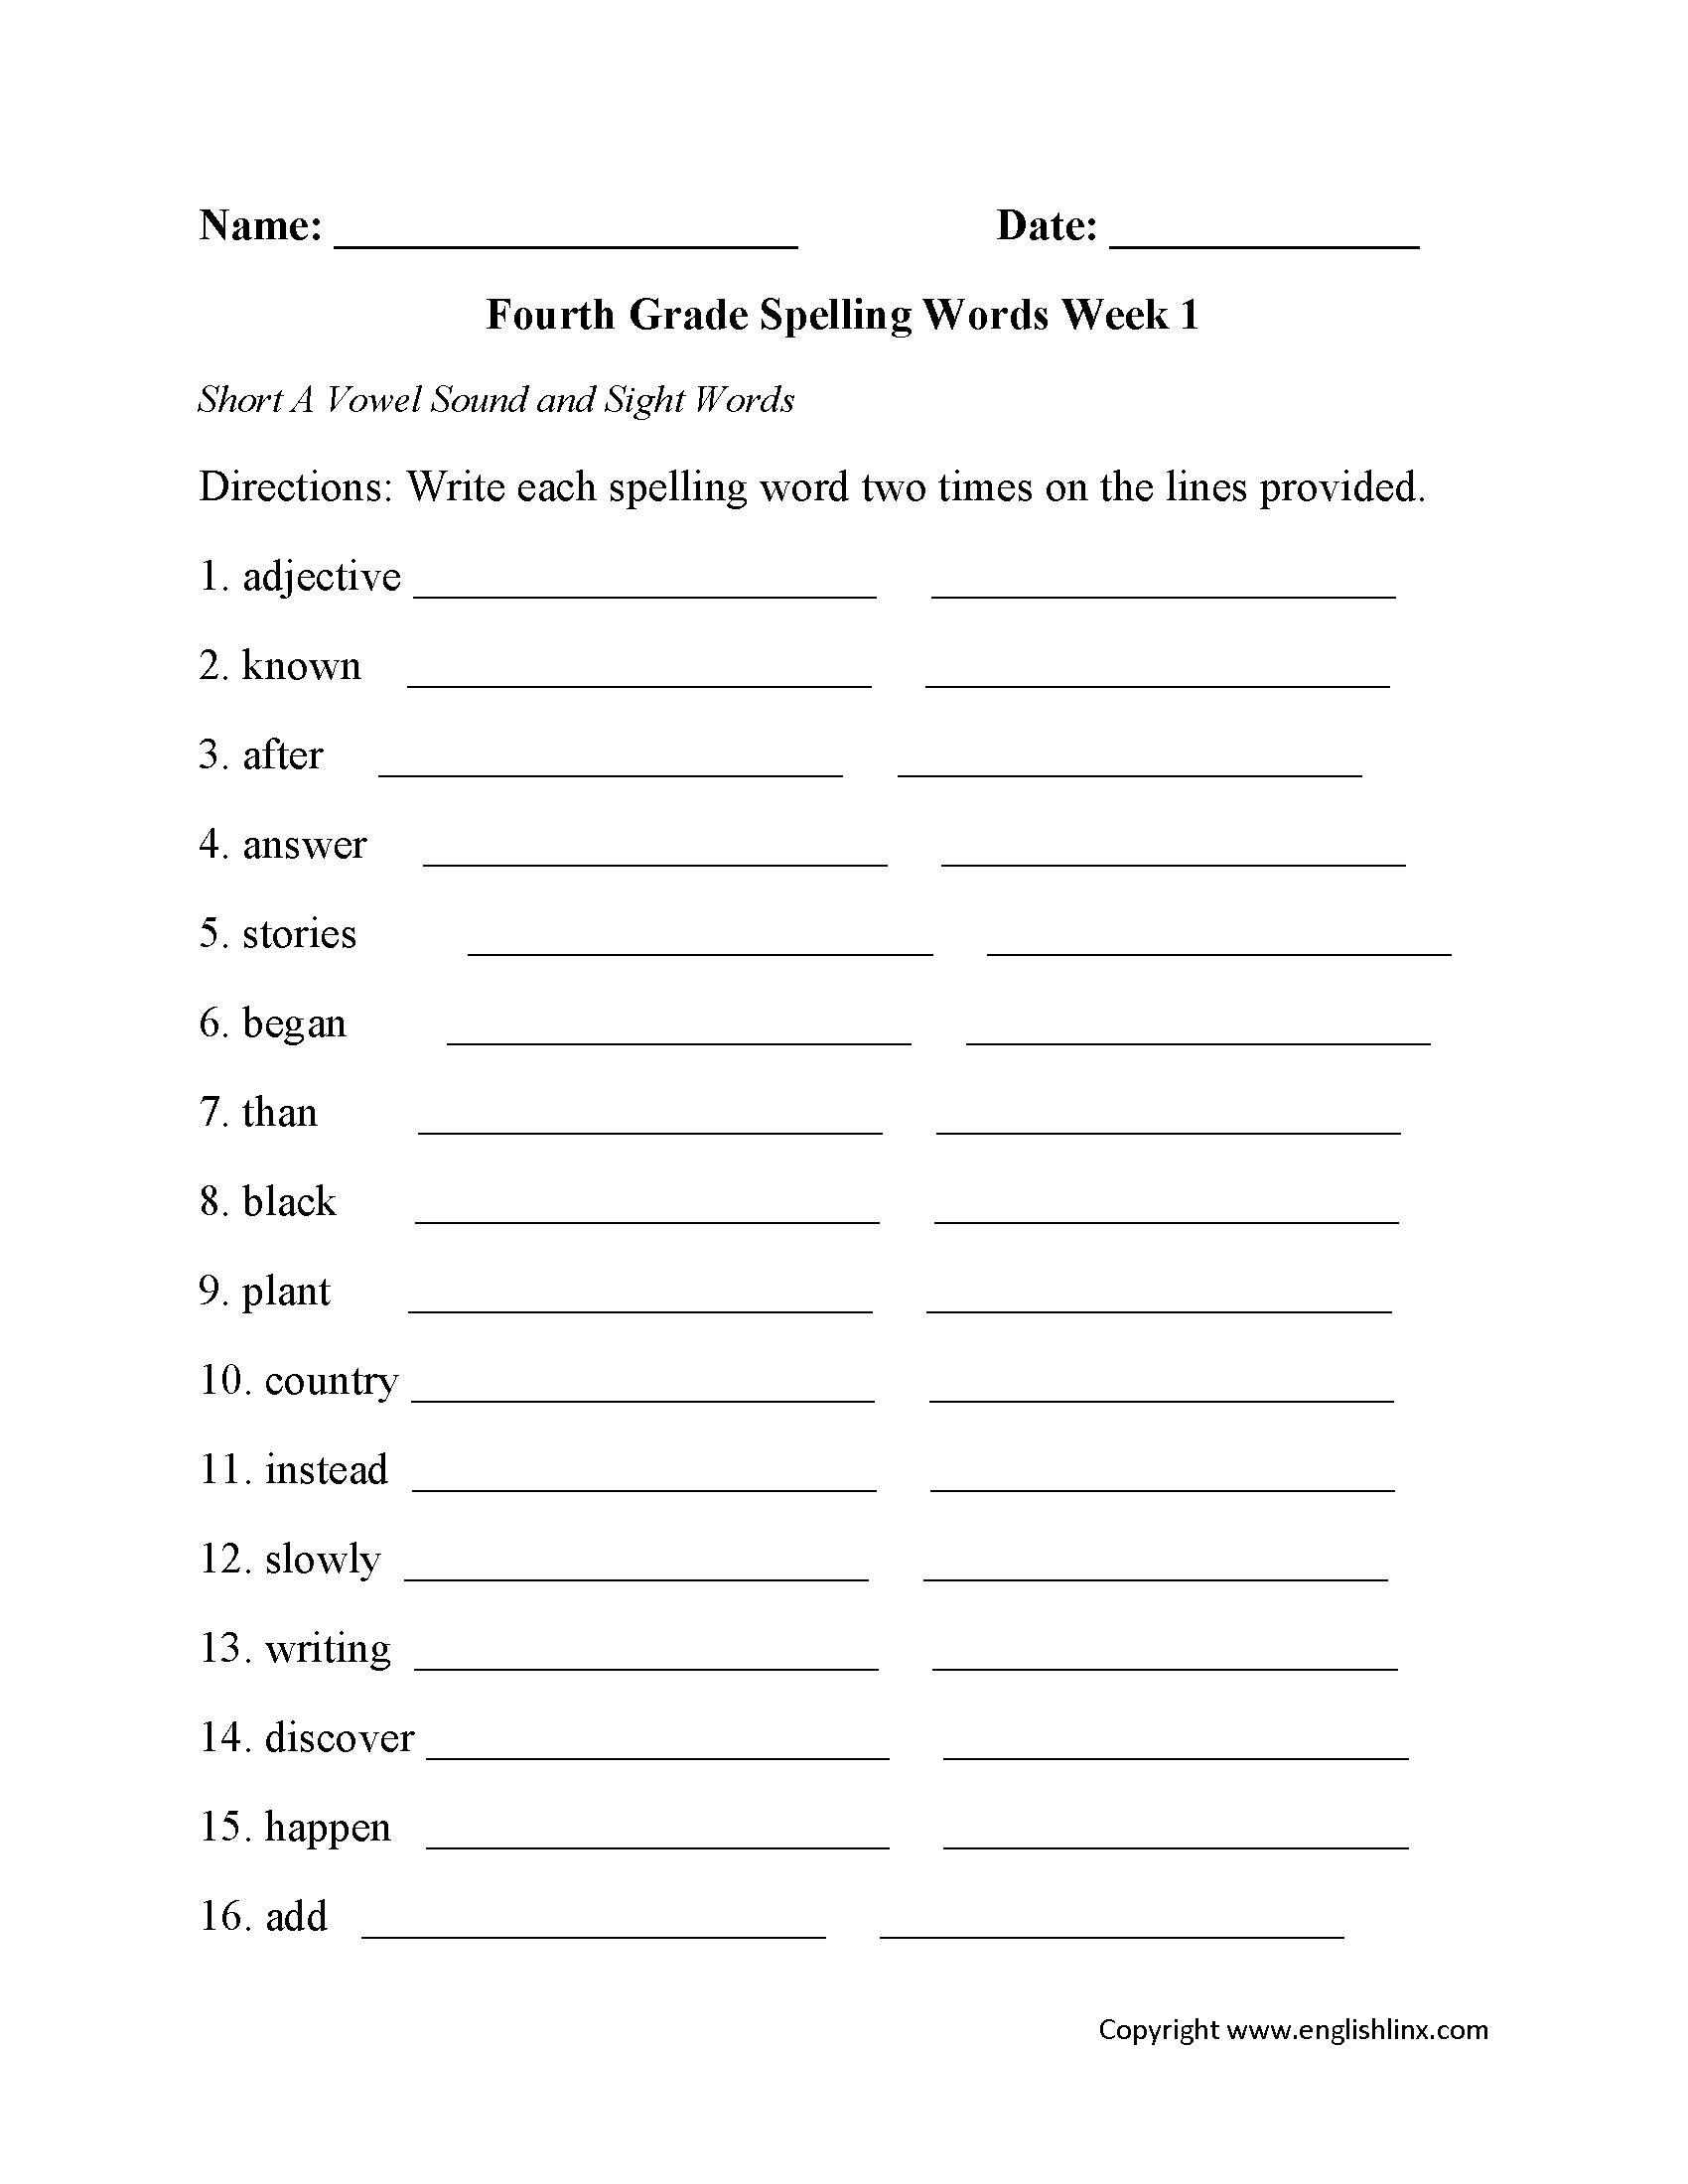 Week 1 Short A Vowel Fourth Grade Spelling Worksheets